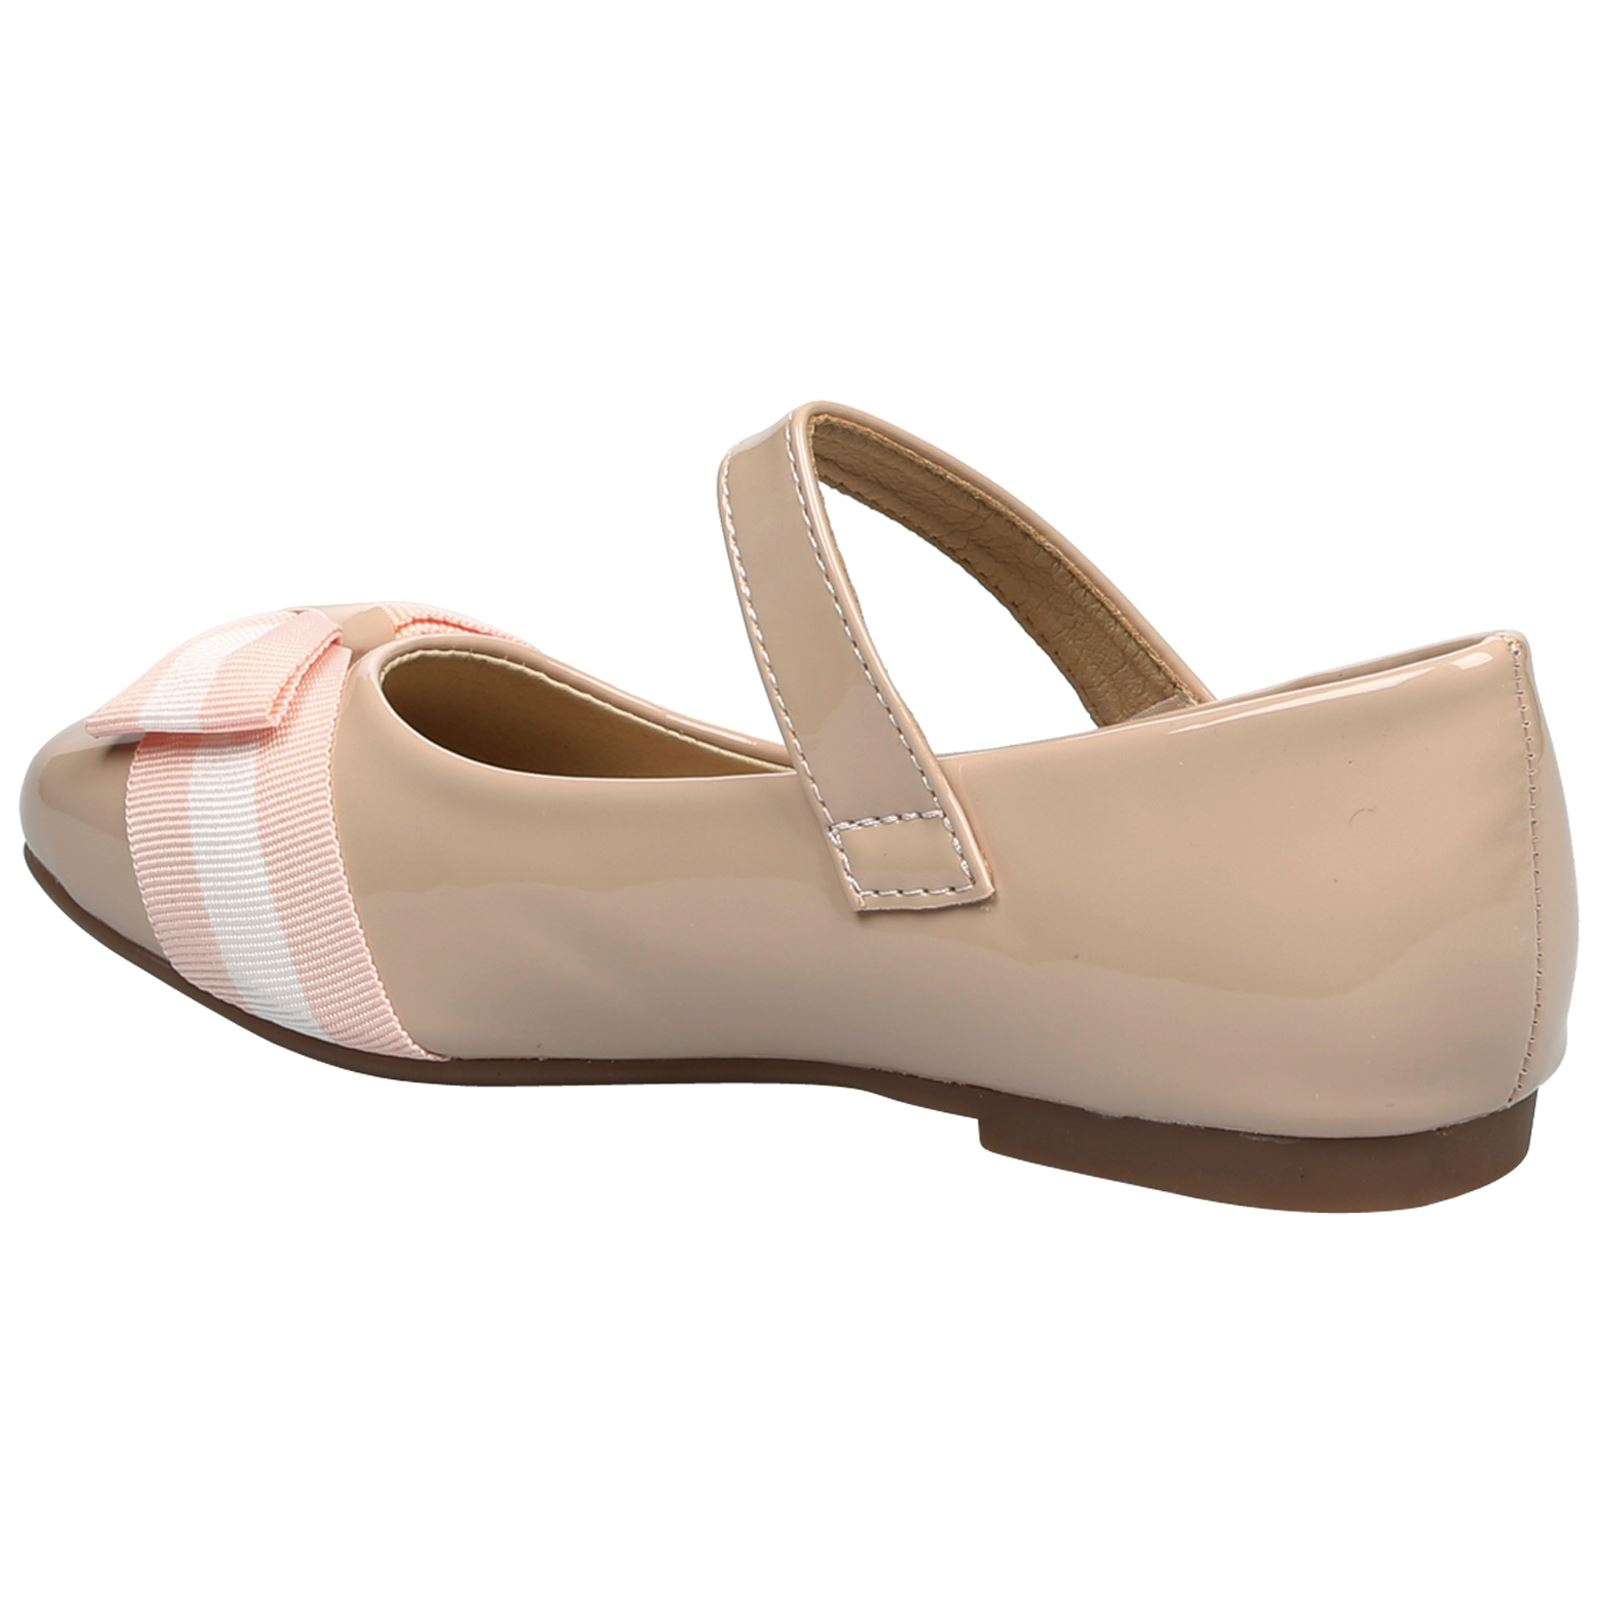 Posie Girls Kids Flats Low Heels Mary Jane Pumps Childrens Shoes Bow Detail Size